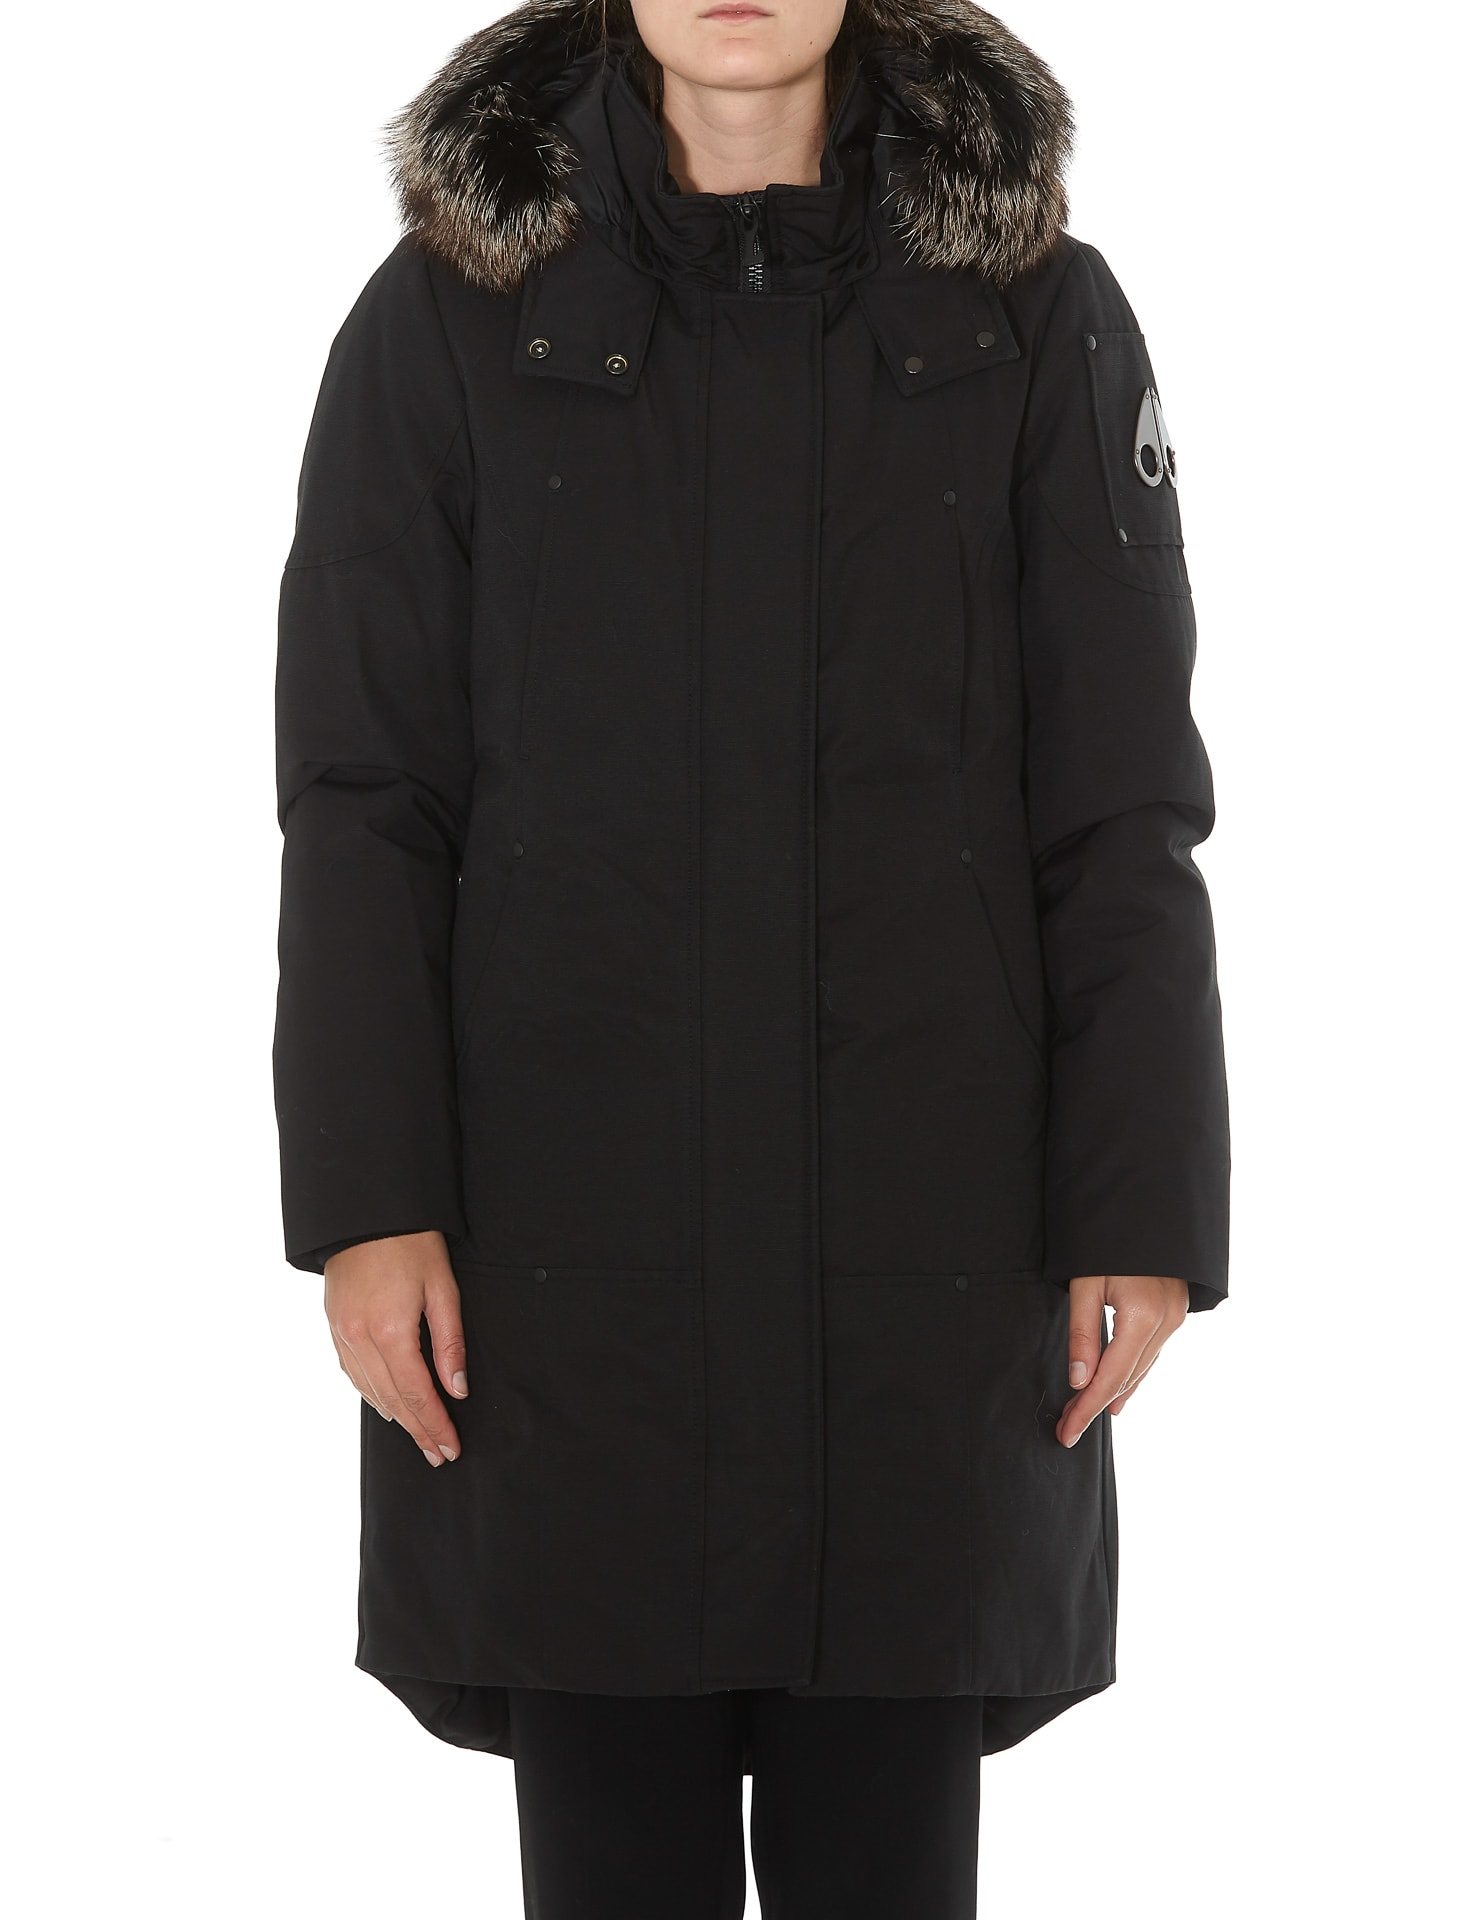 Moose Knuckles Lake Padded Parka